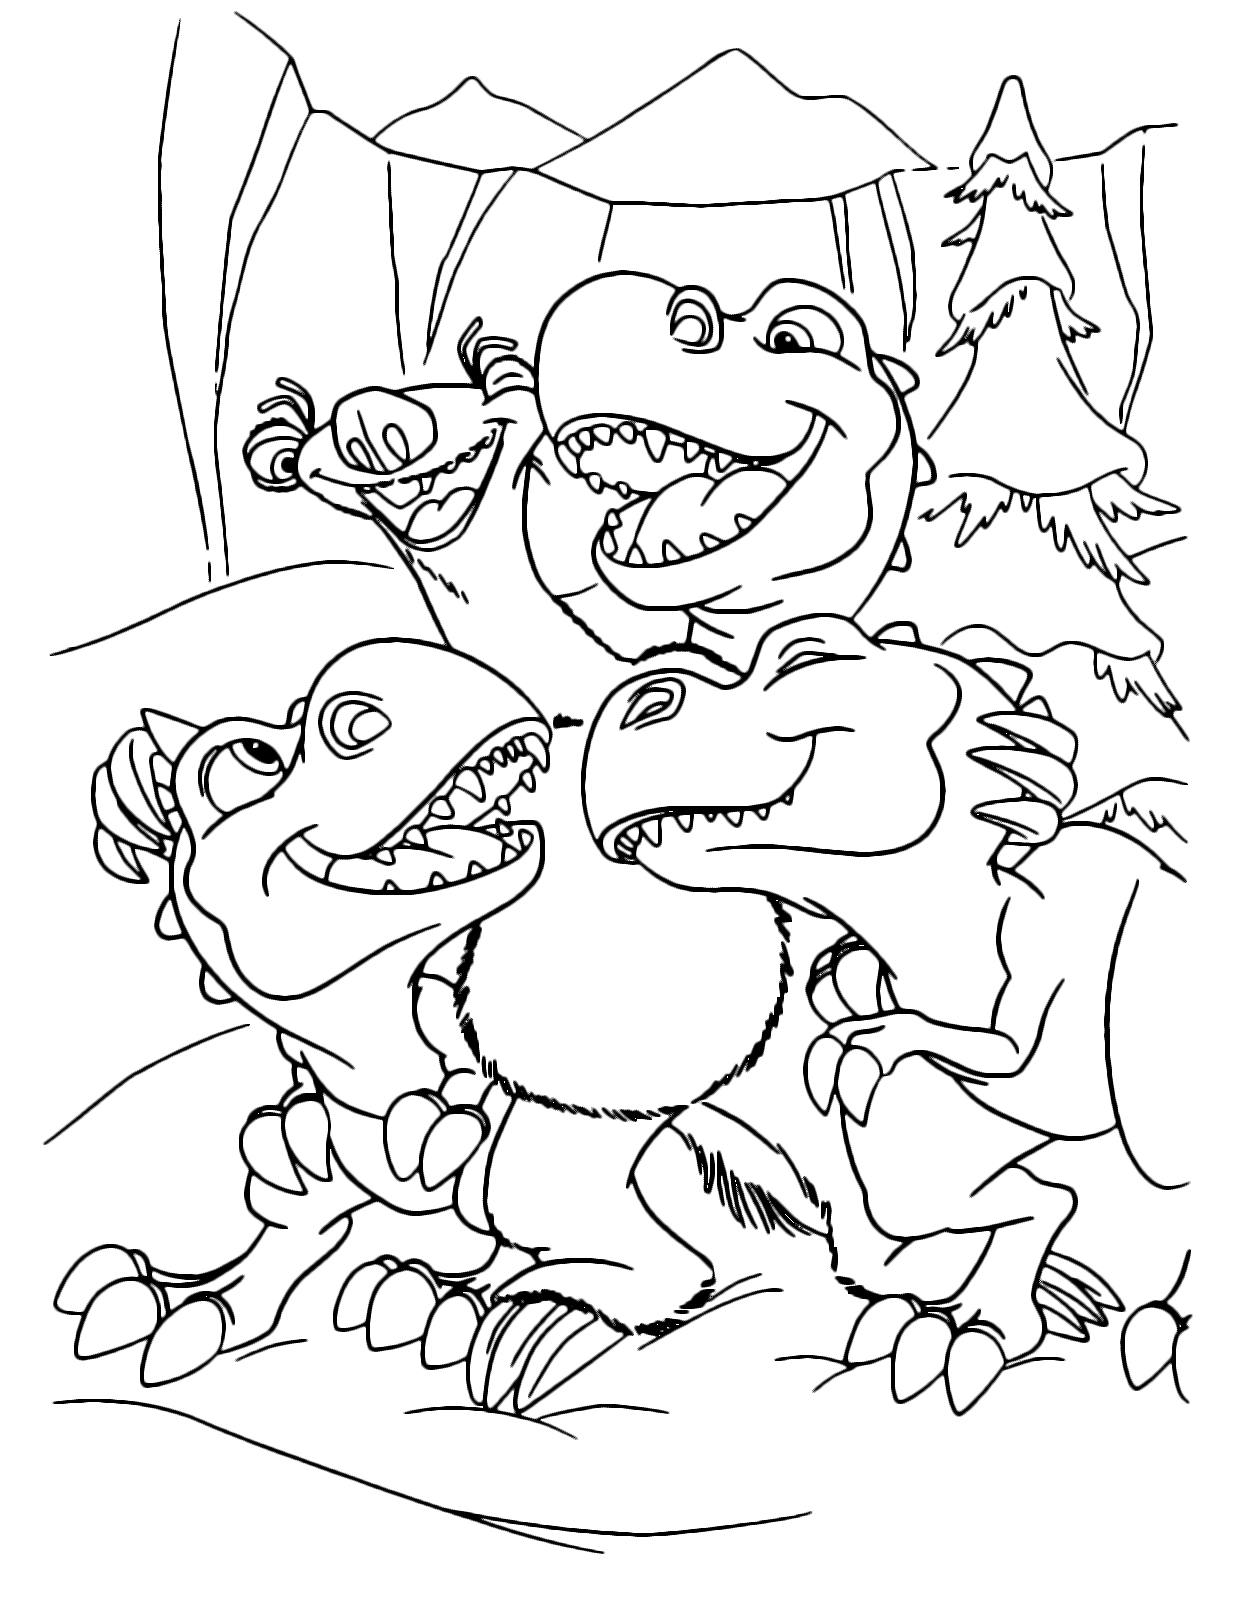 Ice Age - Sid embraces the puppies of T-rex Egbert, Yoko, and Shelly